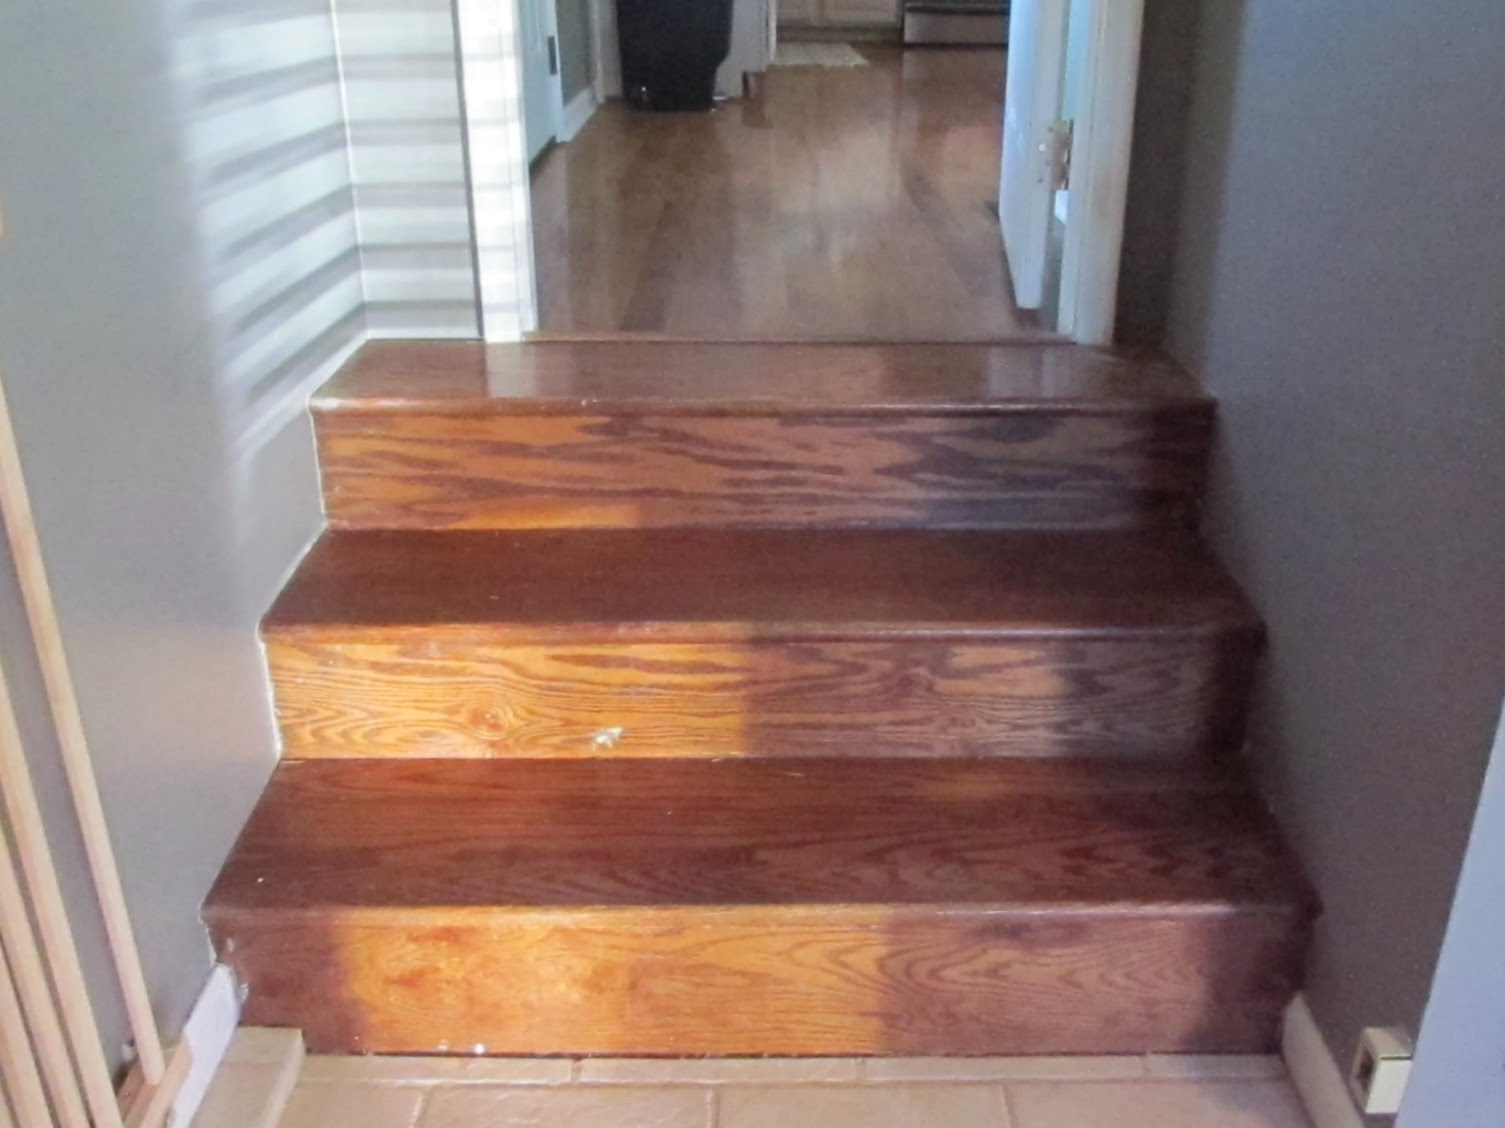 A Trip To Home Depot For Some Quarter Round And Matching Floor Stain We  Were Ready To Go. Getting The Stain To Match Up Perfectly Was The Hard Part  Since We ...